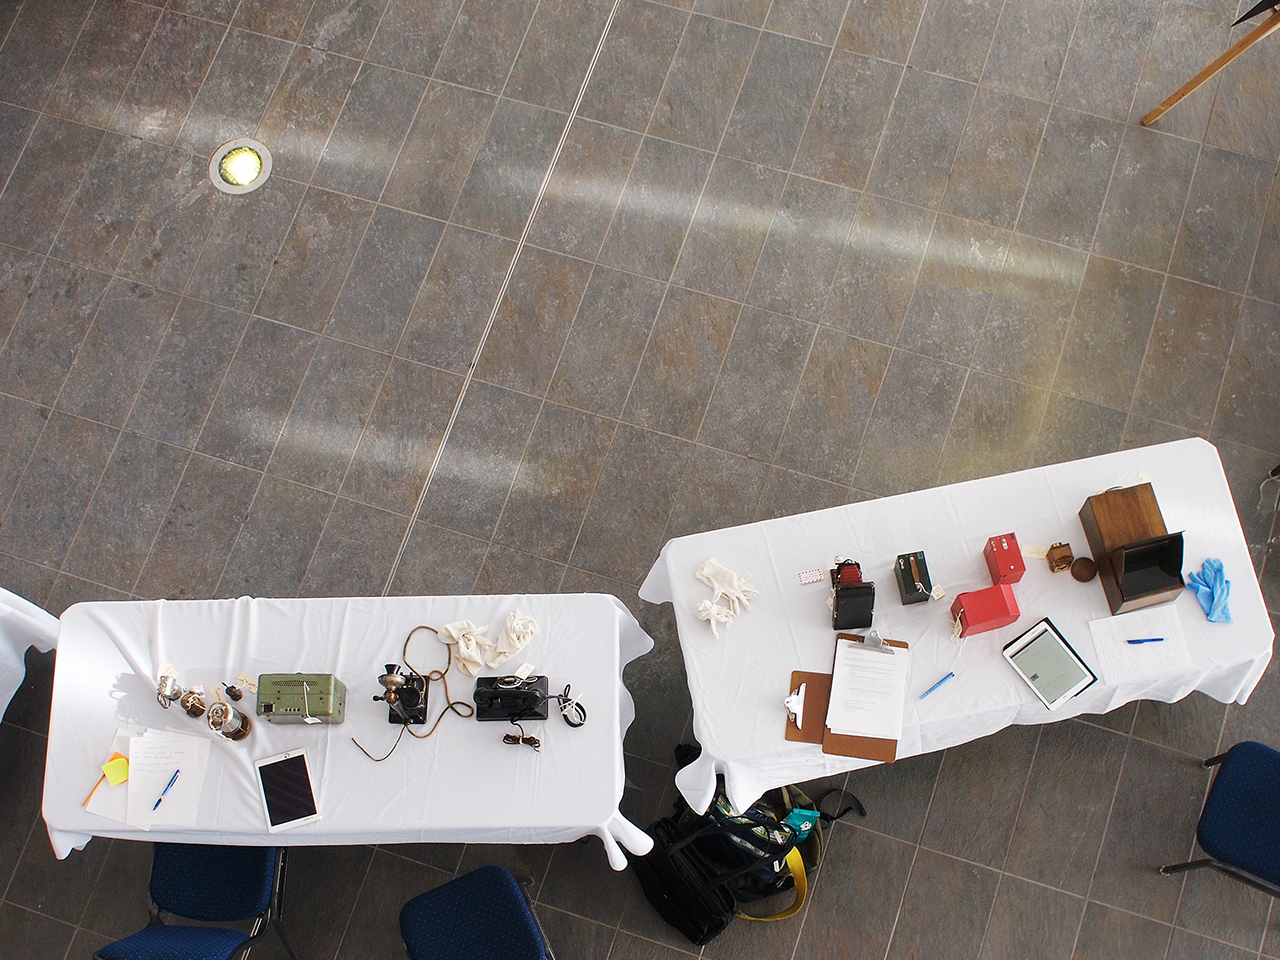 a table with cameras and telephones on it